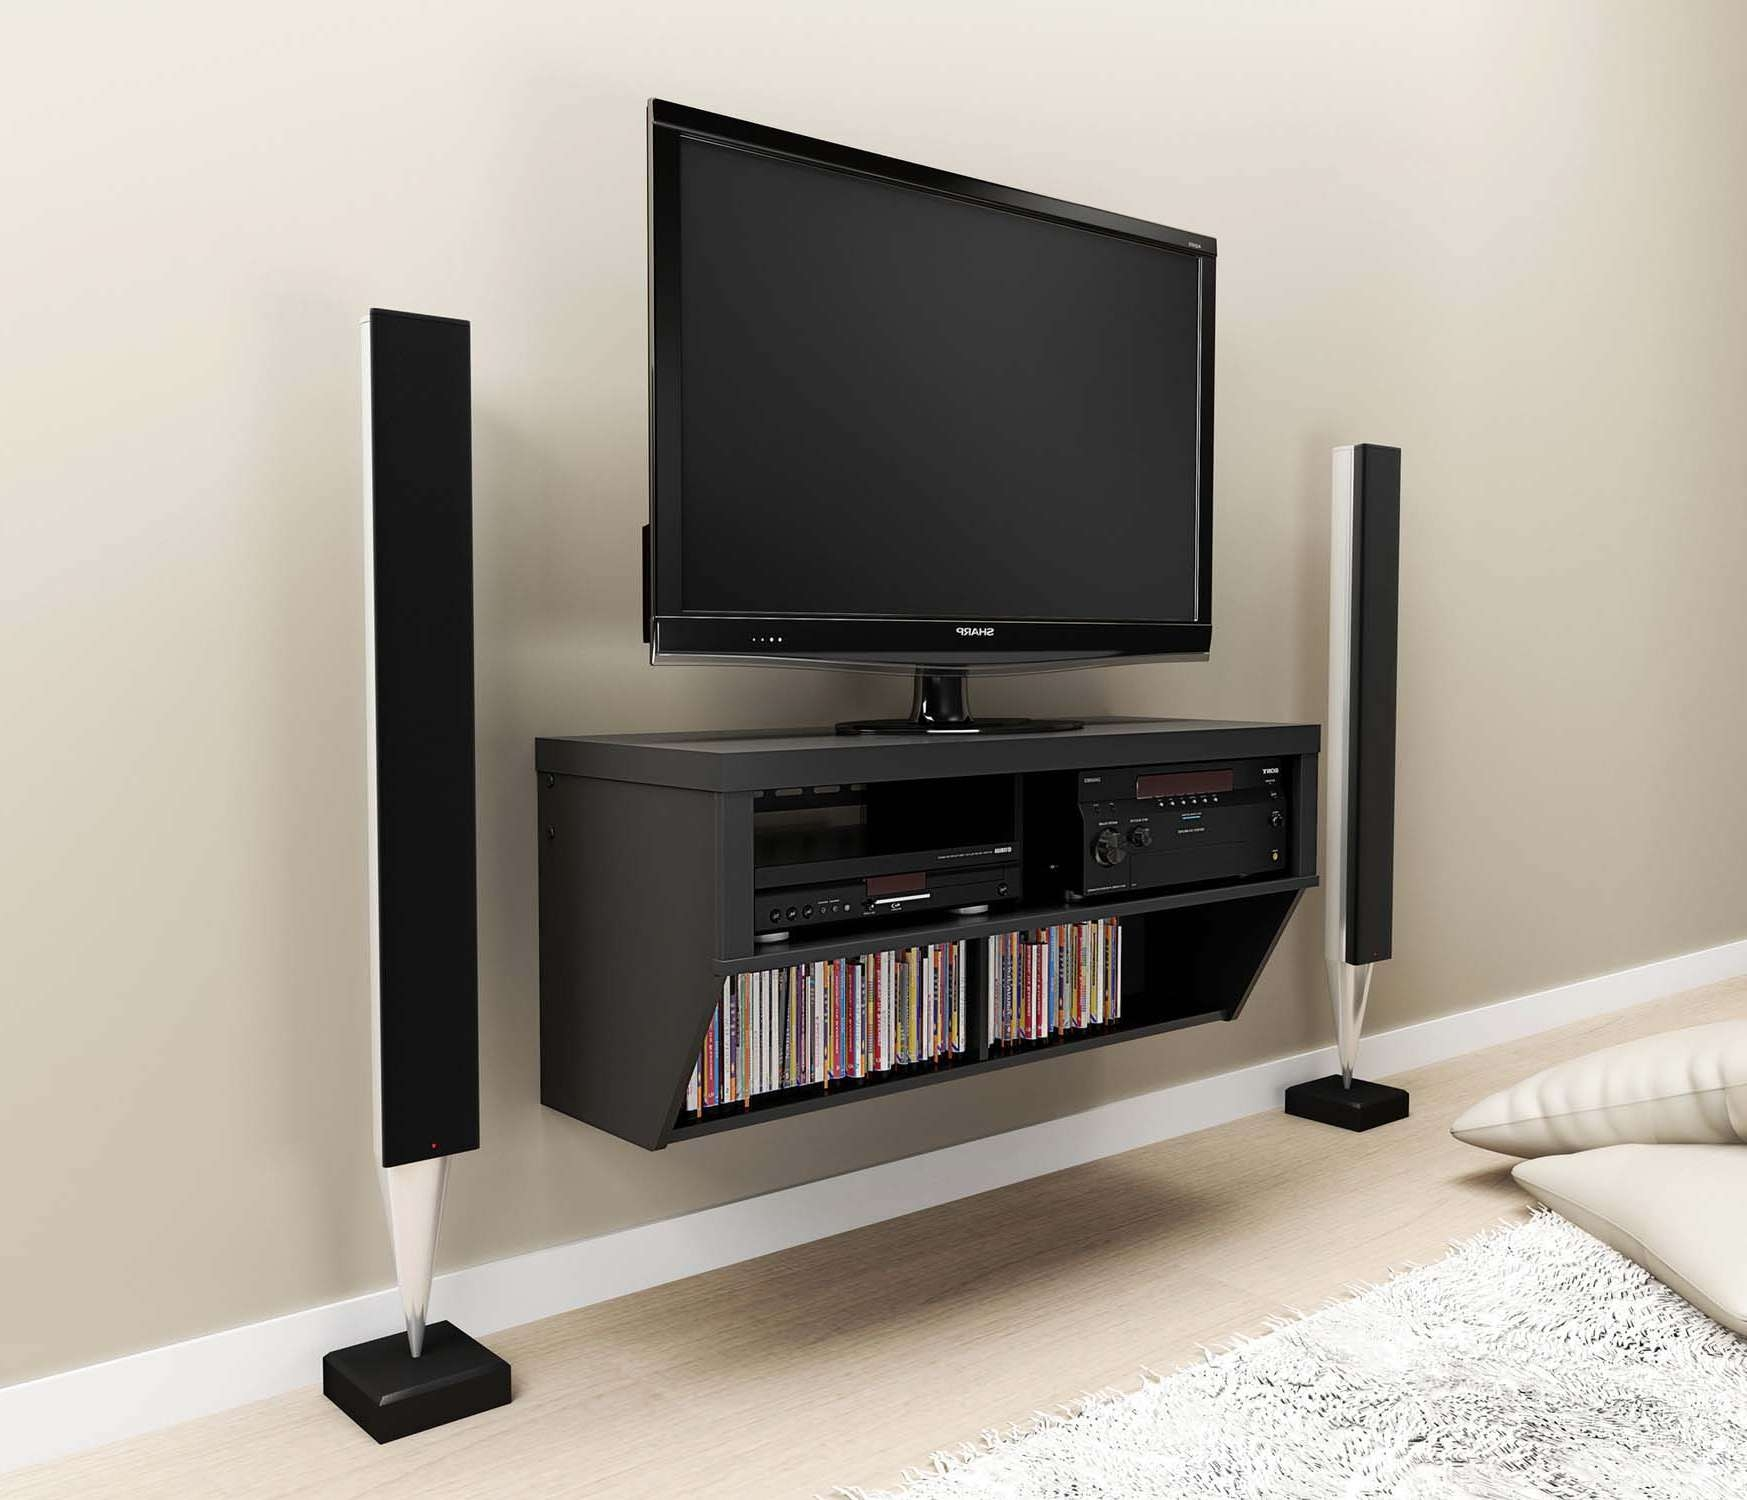 Black Stained Oak Wall Mounted Media Shelf And Tv Stand Of Trendy Throughout White Wall Mounted Tv Stands (View 1 of 15)